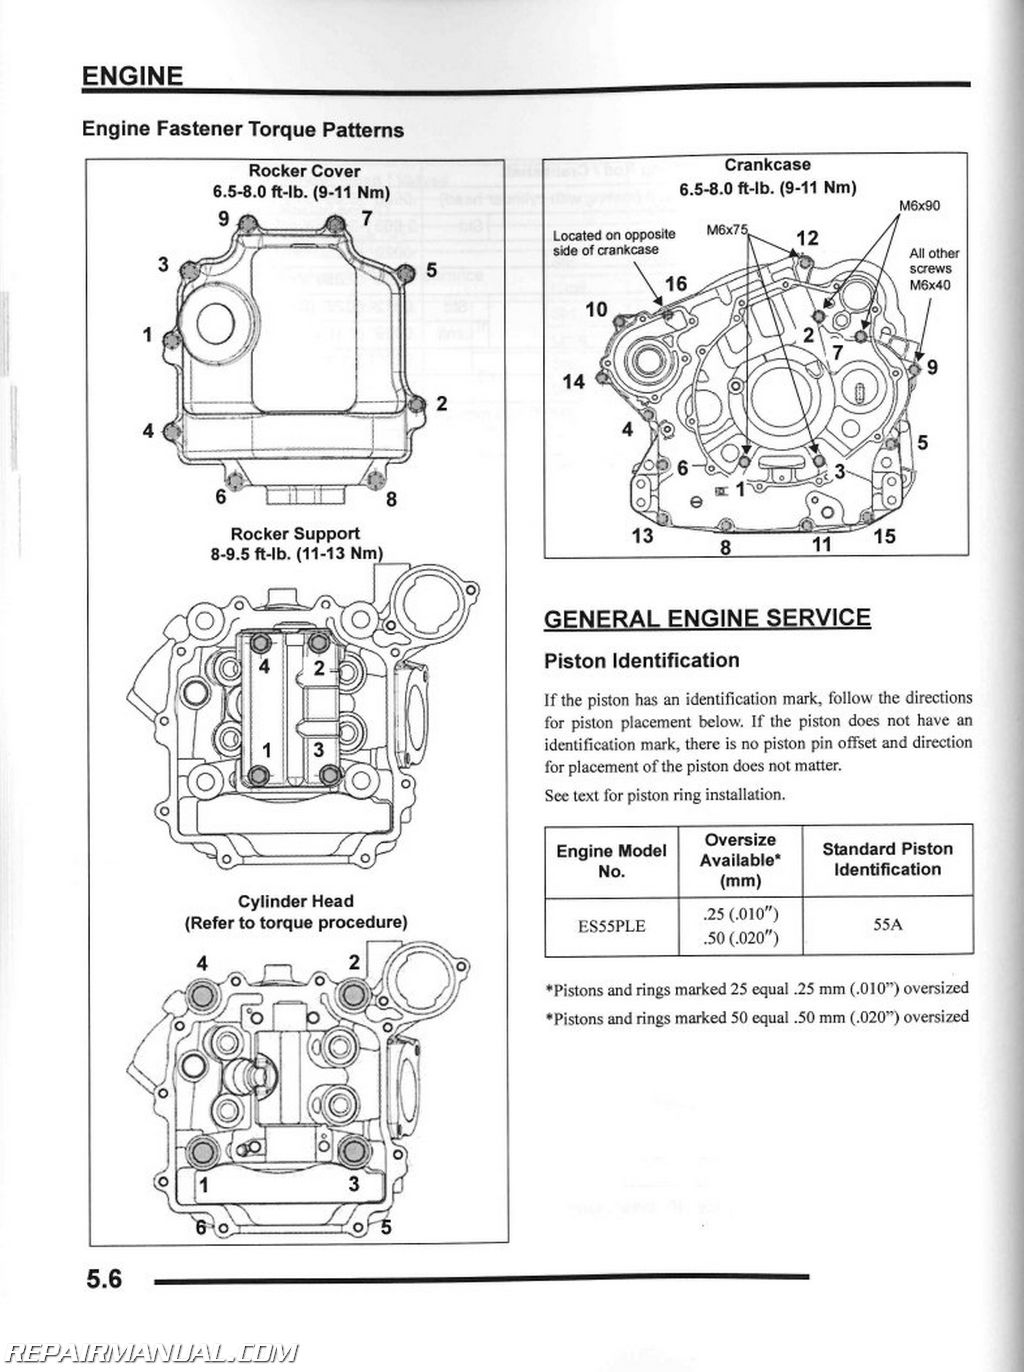 2010 polaris sportsman 550 wiring diagram wiring diagrams rh silviaardila co 2013 polaris sportsman 550 service manual pdf 2013 polaris sportsman 550 owners manual